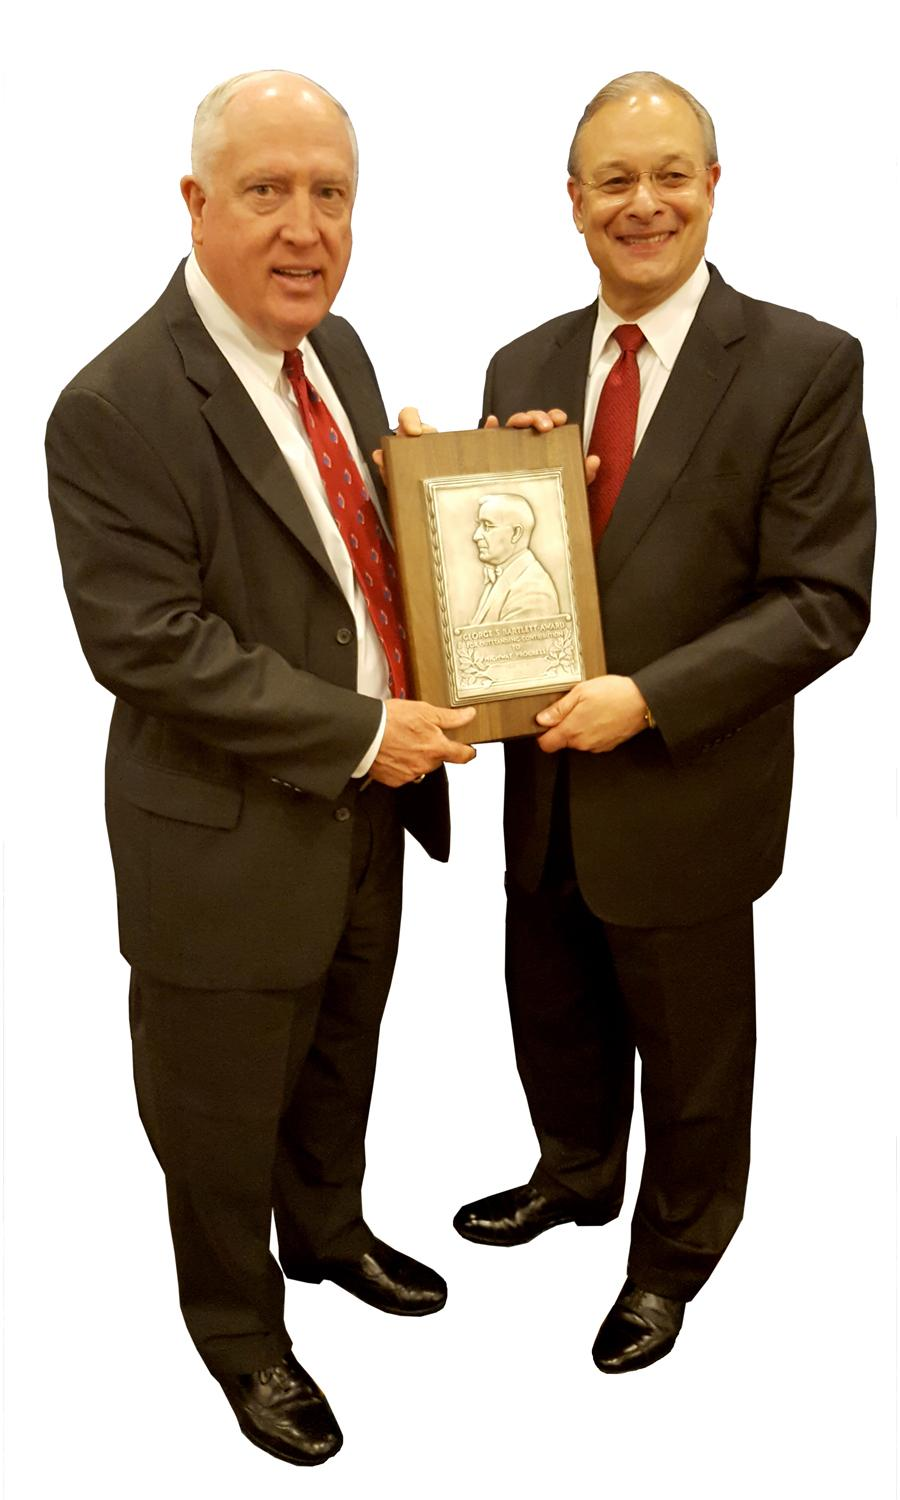 David Gehr, senior vice president and highway market leader at WSP | Parsons Brinckerhoff (right), receives the George. S. Bartlett Award from Pete Ruane, president and chief executive officer of the American Road & Transportation Builders Association